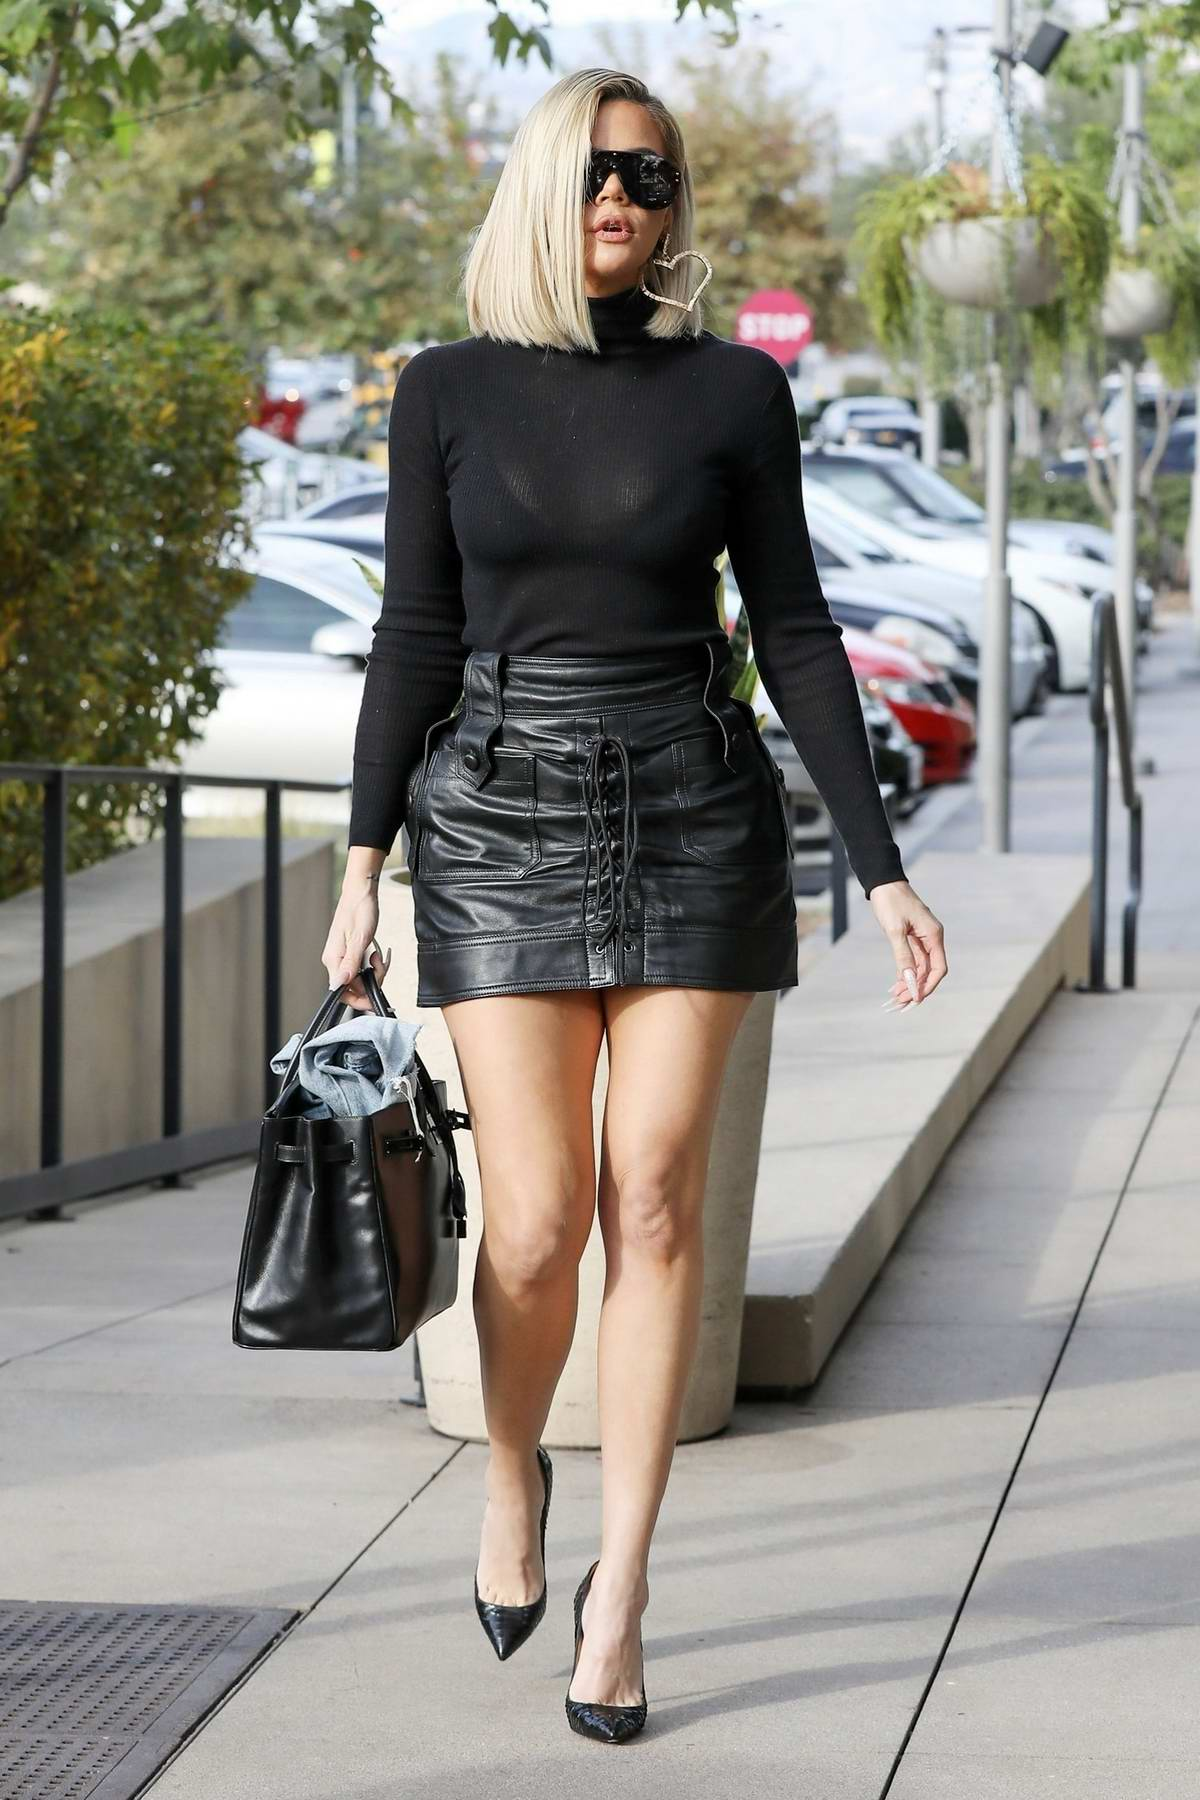 Khloe Kardashian rocks a black top and leather mini skirt as she arrives for a shoot at Villa in Woodland Hills, California